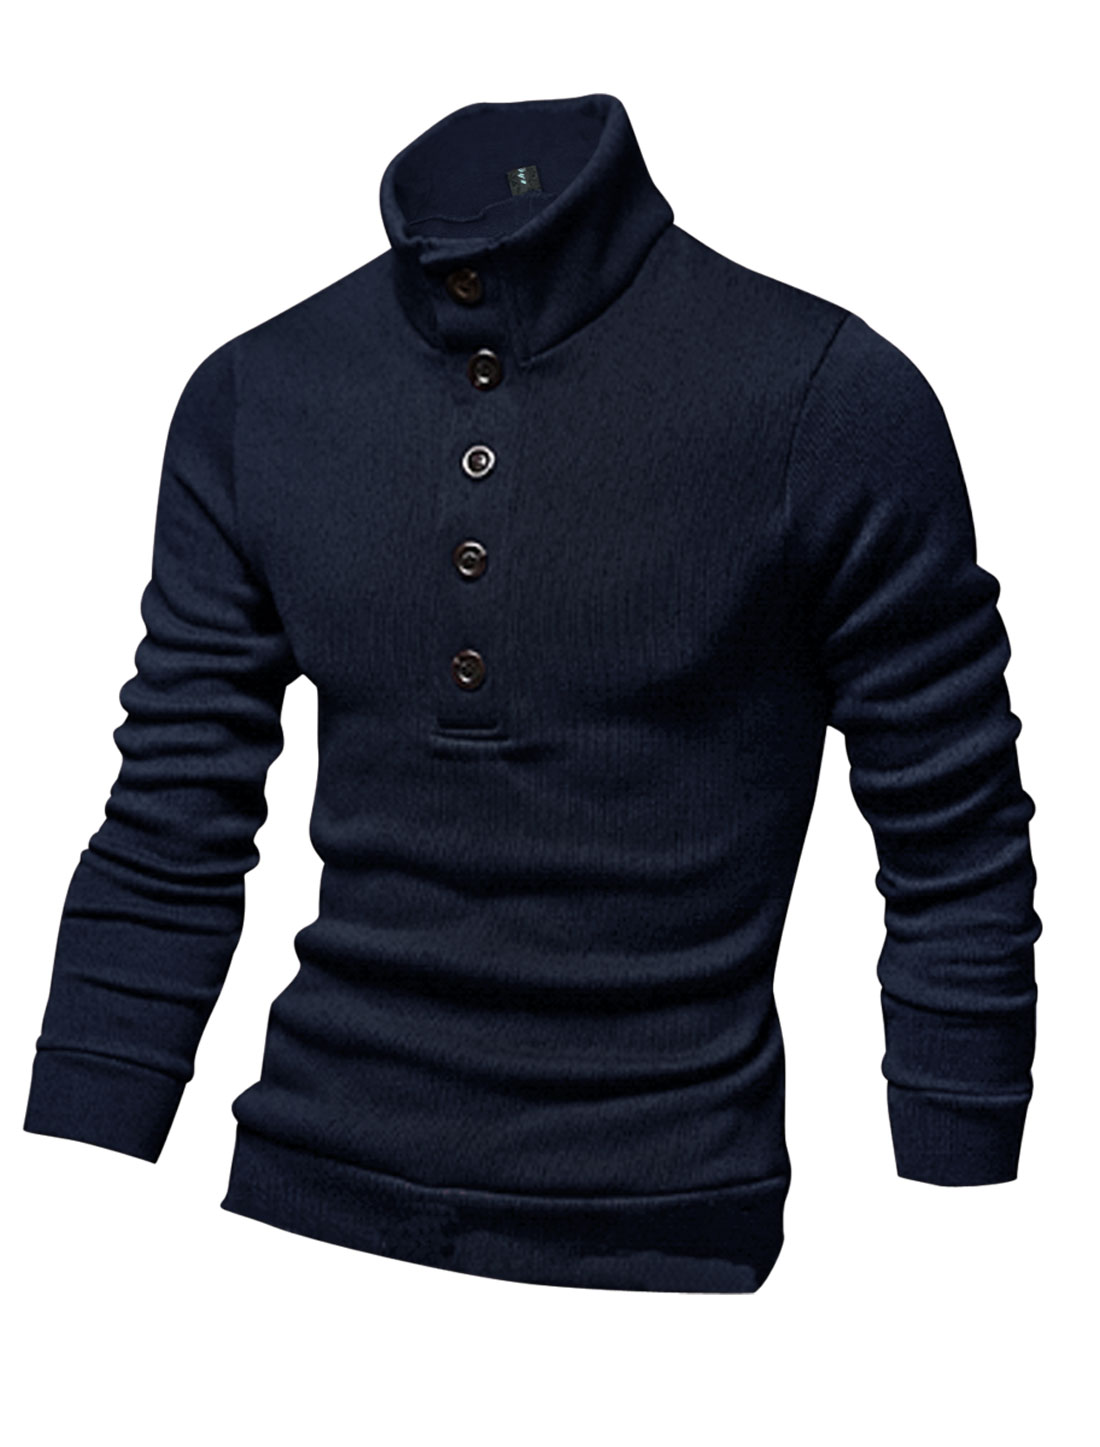 Men Pullover Mock Neck Cozy Fit Stretchy Knit Shirt Navy Blue M